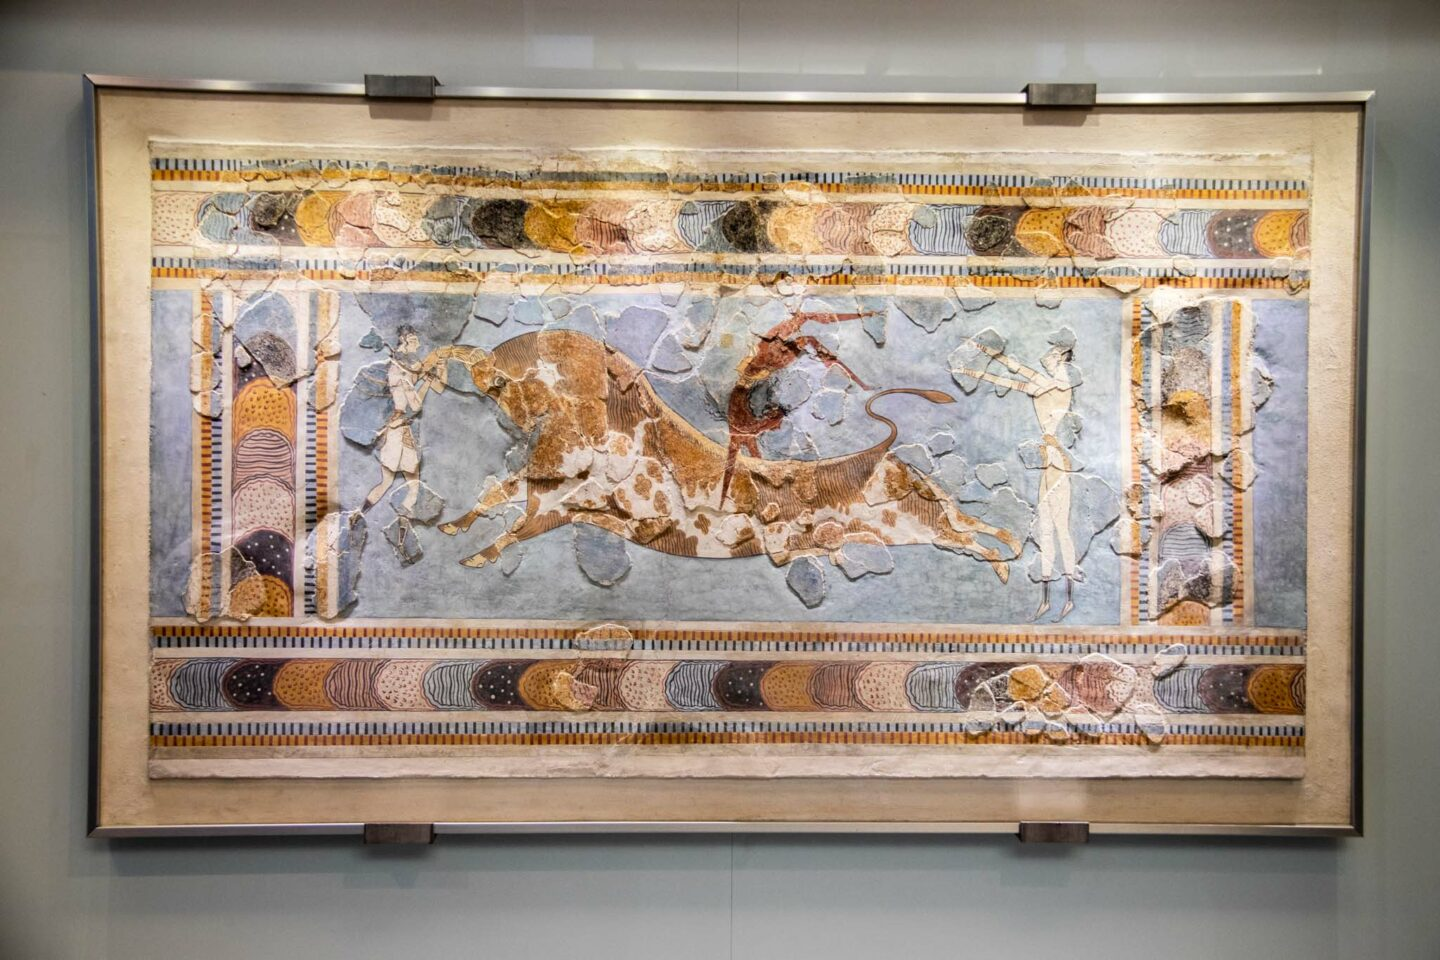 A surviving fresco from the palace of Knossos, depicting the sport of bull jumping. Now on display in the Heraklion Archaeological Museum.